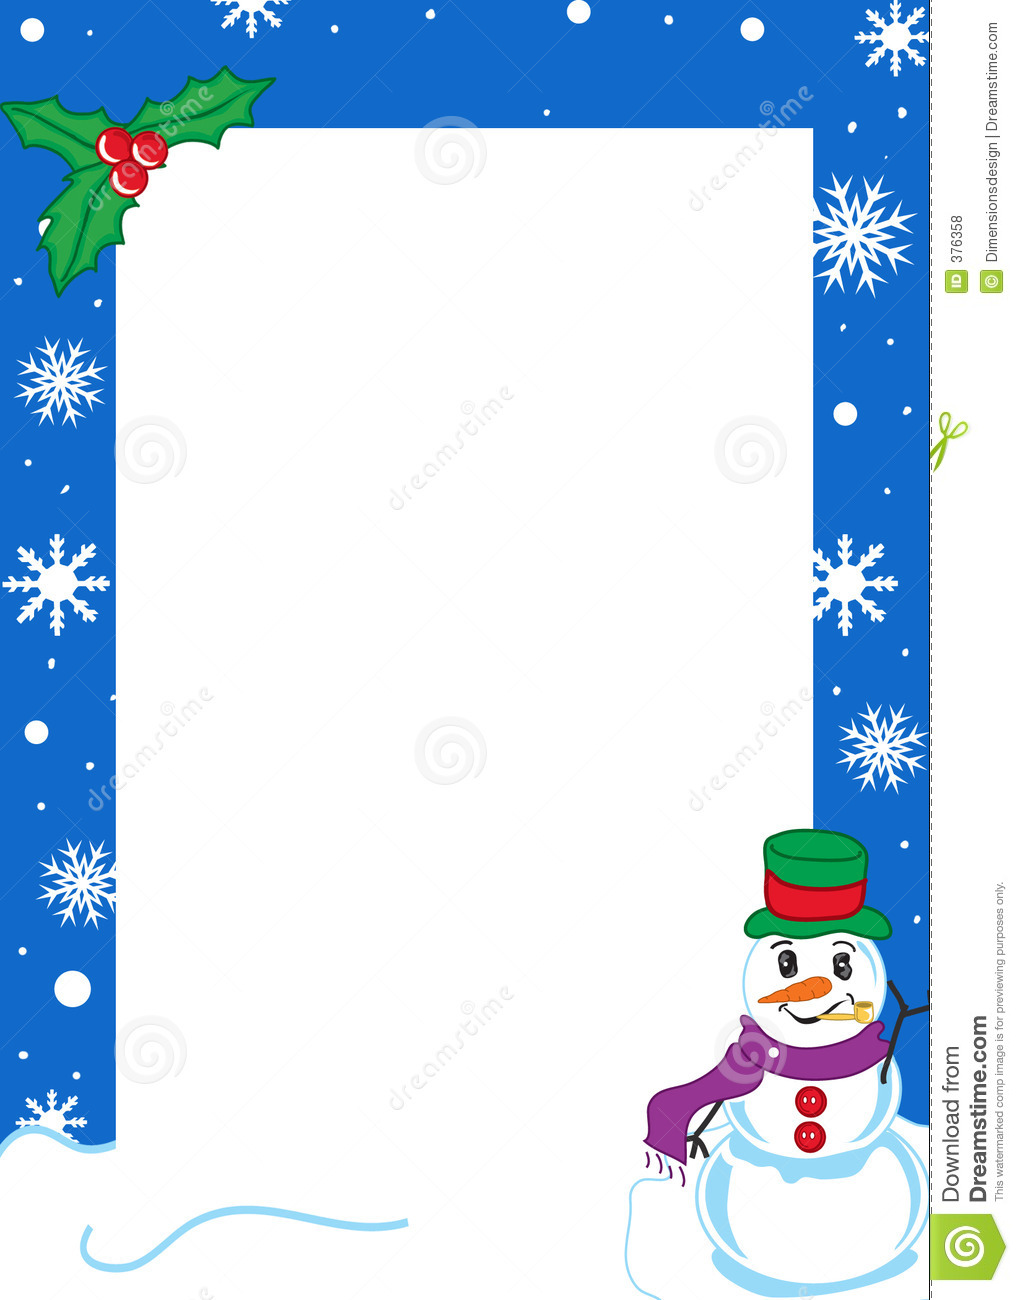 Winter Borders Free Winter border royalty free